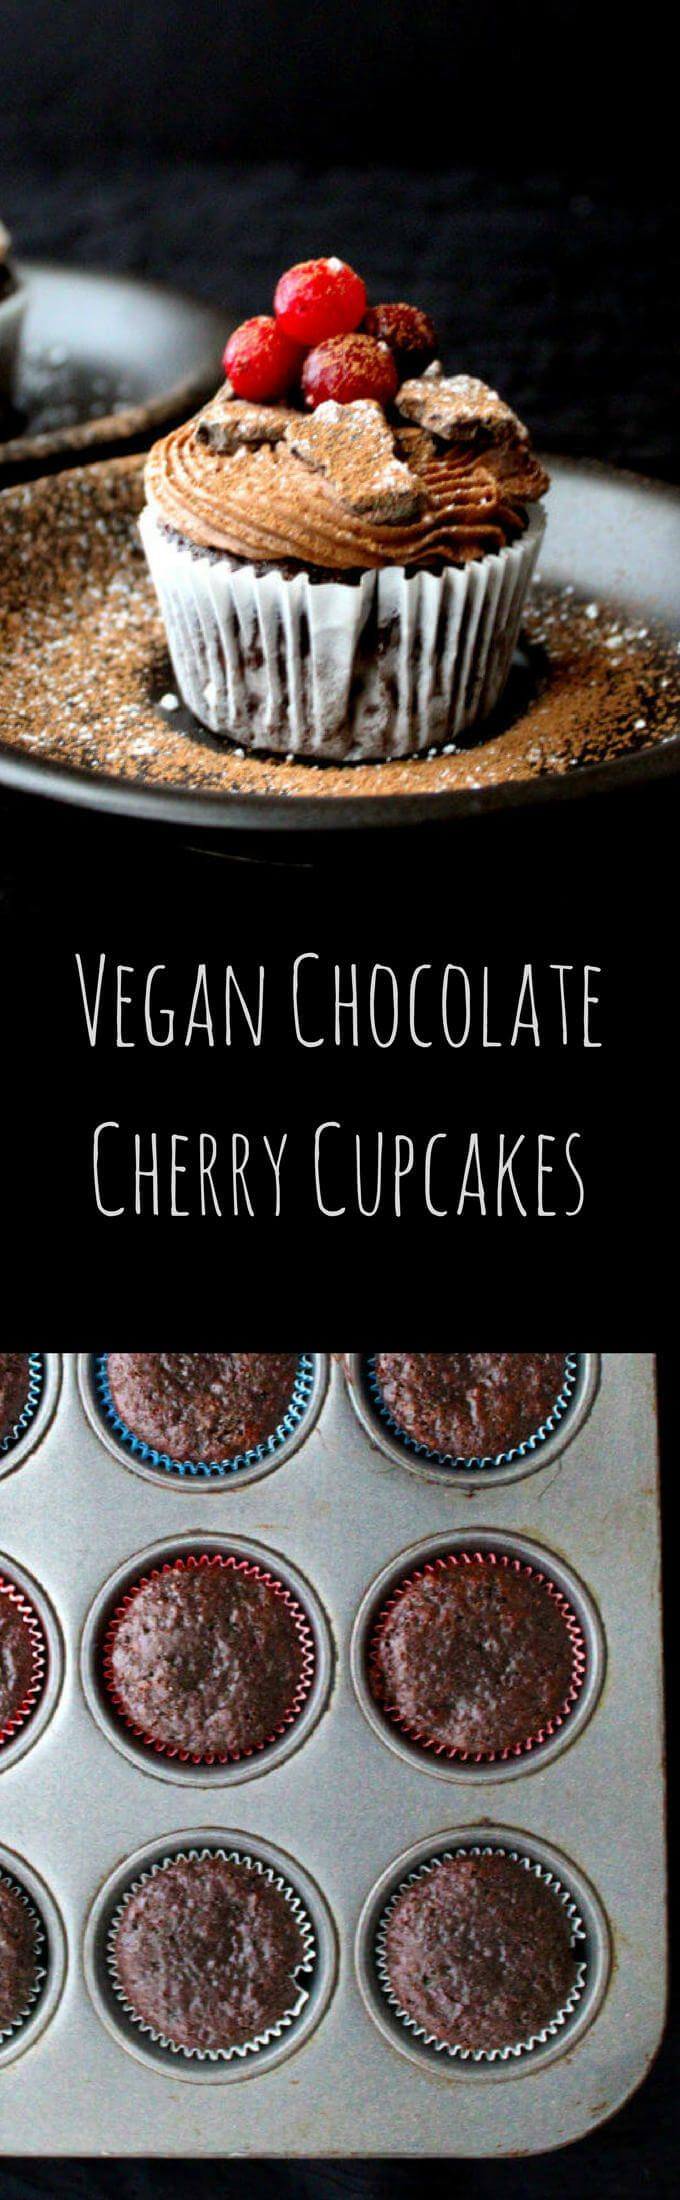 My Vegan Chocolate Cherry Cupcakes are the perfect dessert to bake up for your sweetie on Valentine's Day. The cupcakes are moist and delicious with bits of cherry inside, and they have no added fat. The frosting is soft, fluffy and luscious and it'll put a smile on any face. A vegan, soy-free and nut-free recipe.